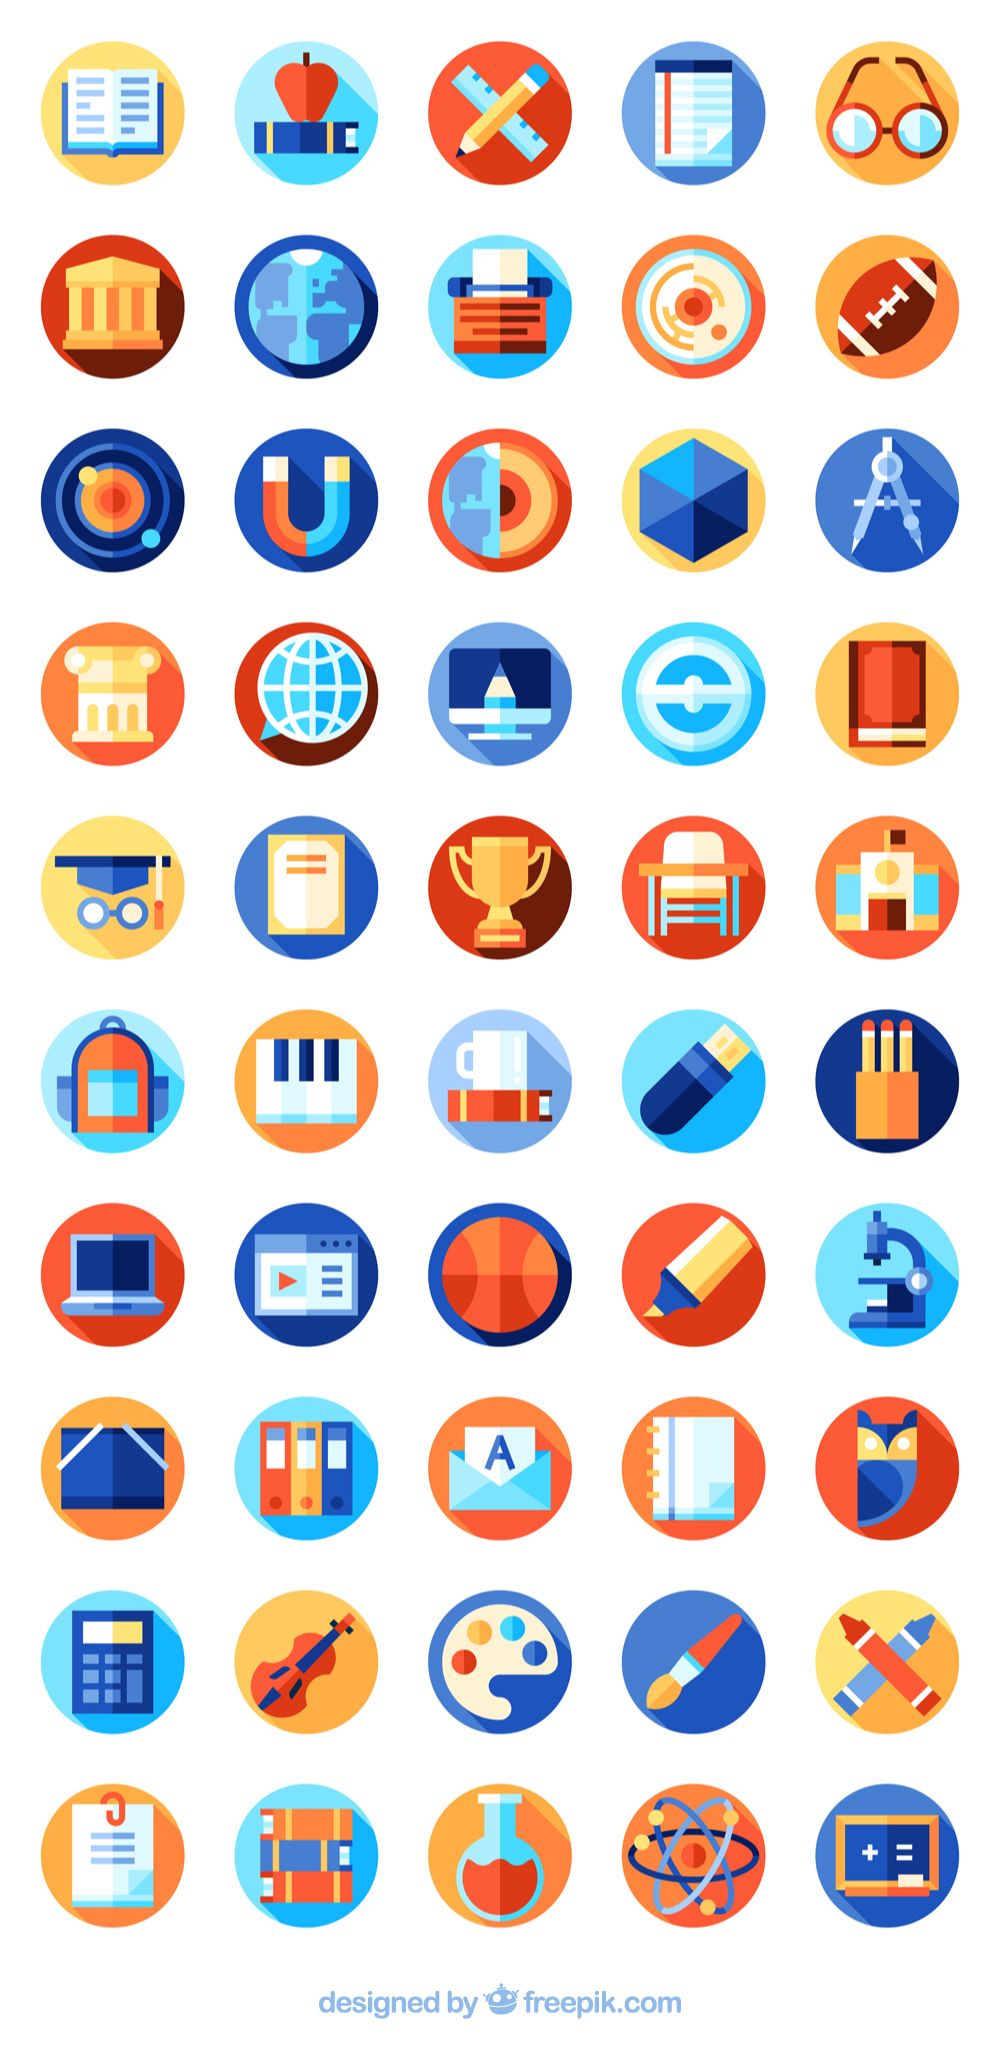 50 premium vector icons of Education Icons designed by